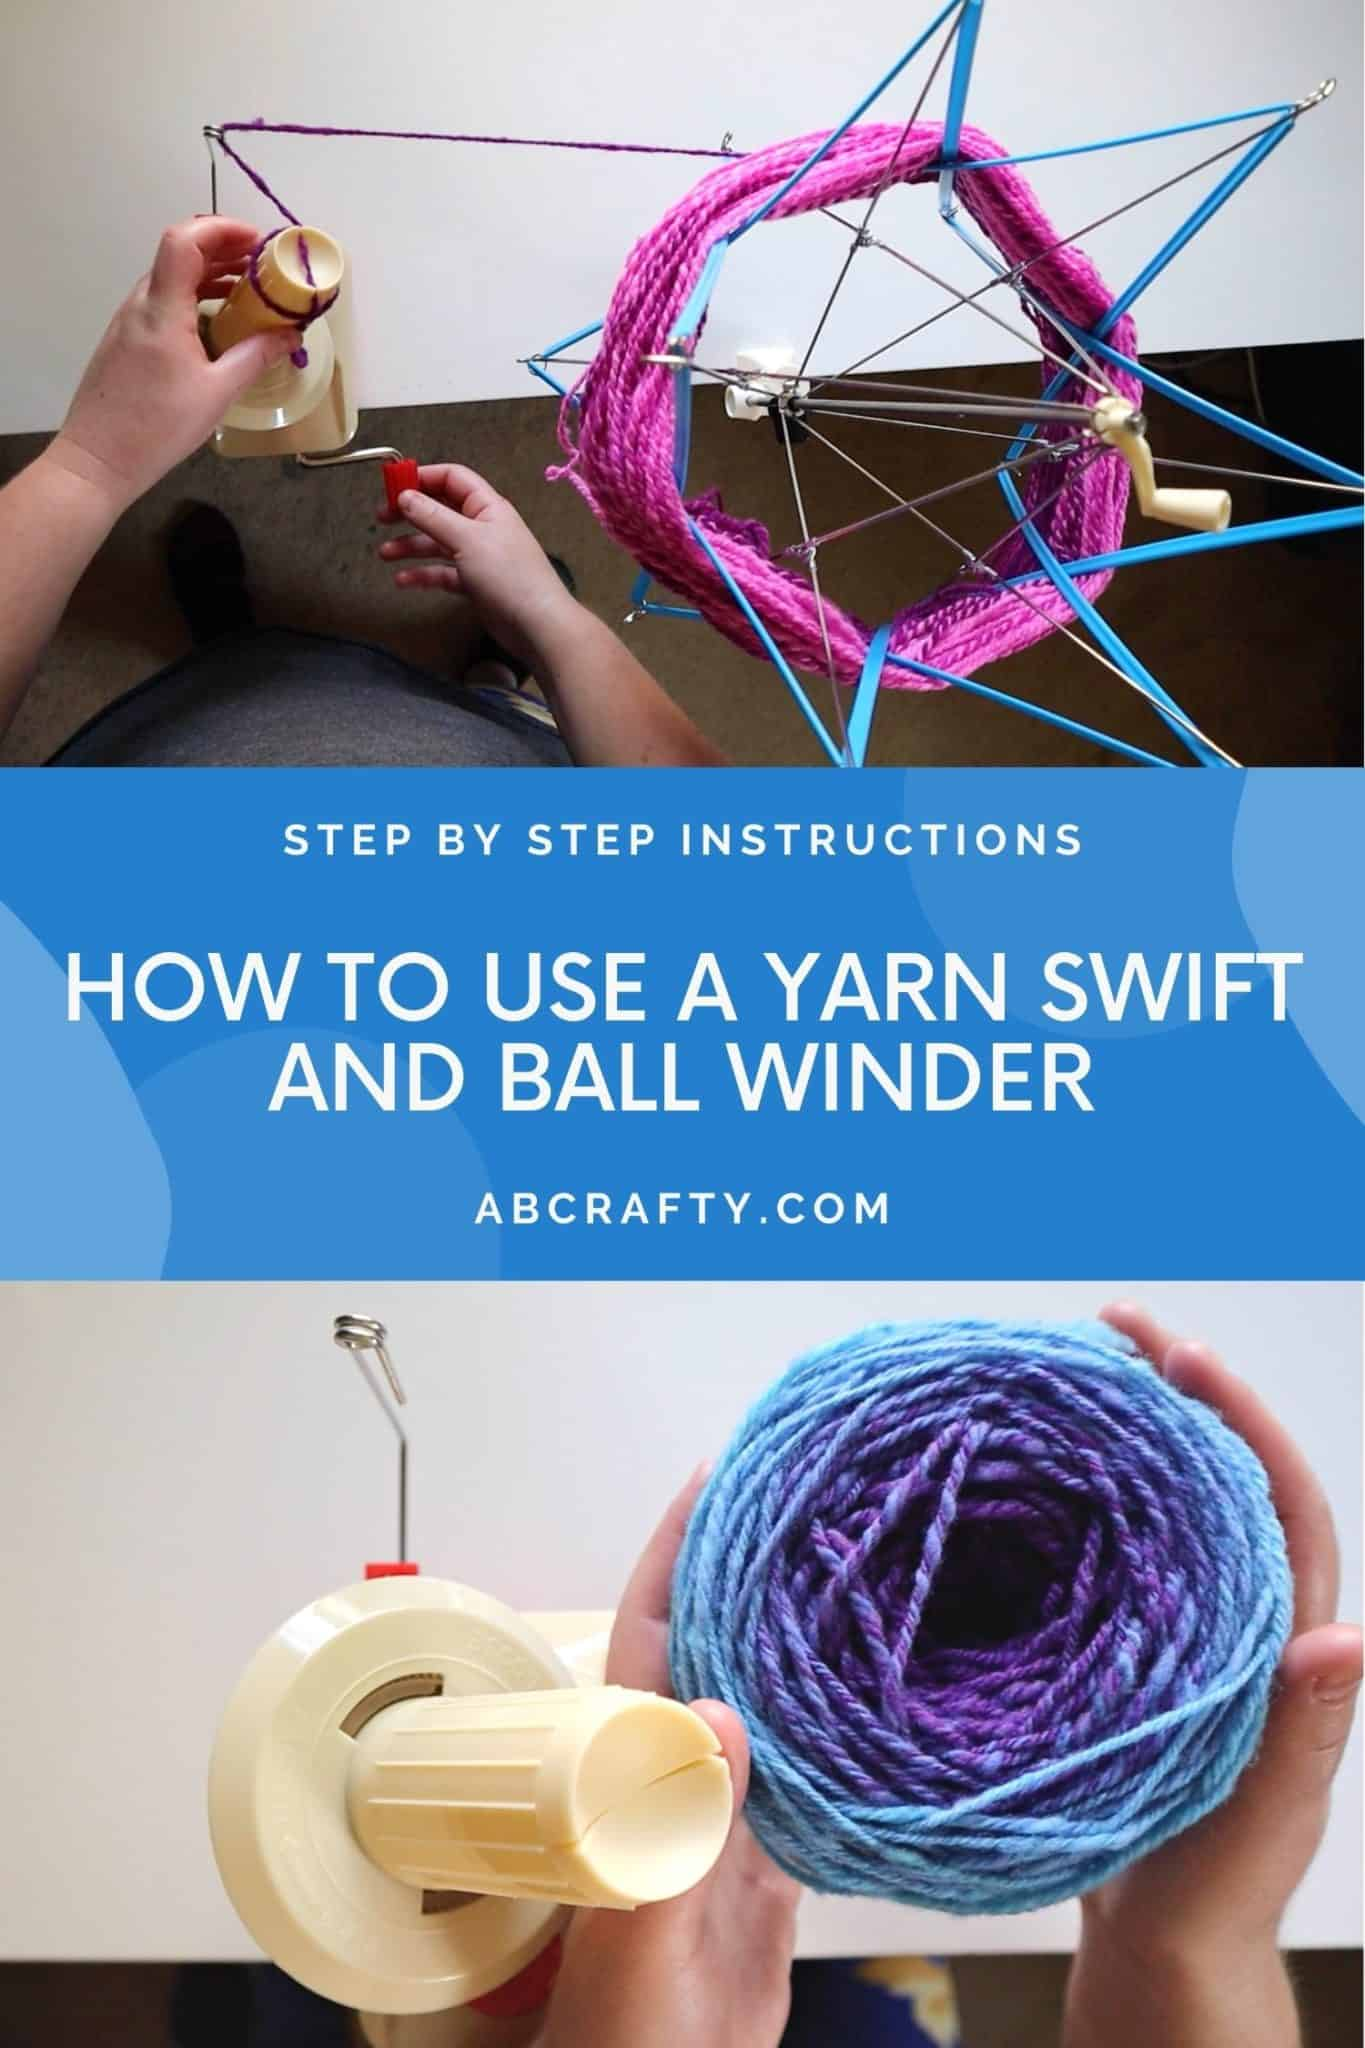 """top photo shows pink yarn on a yarn swift and pulled onto a yarn winder and the bottom shows a ball of yarn next to the yarn winder with the title """"how to use a yarn swift and ball winder"""""""